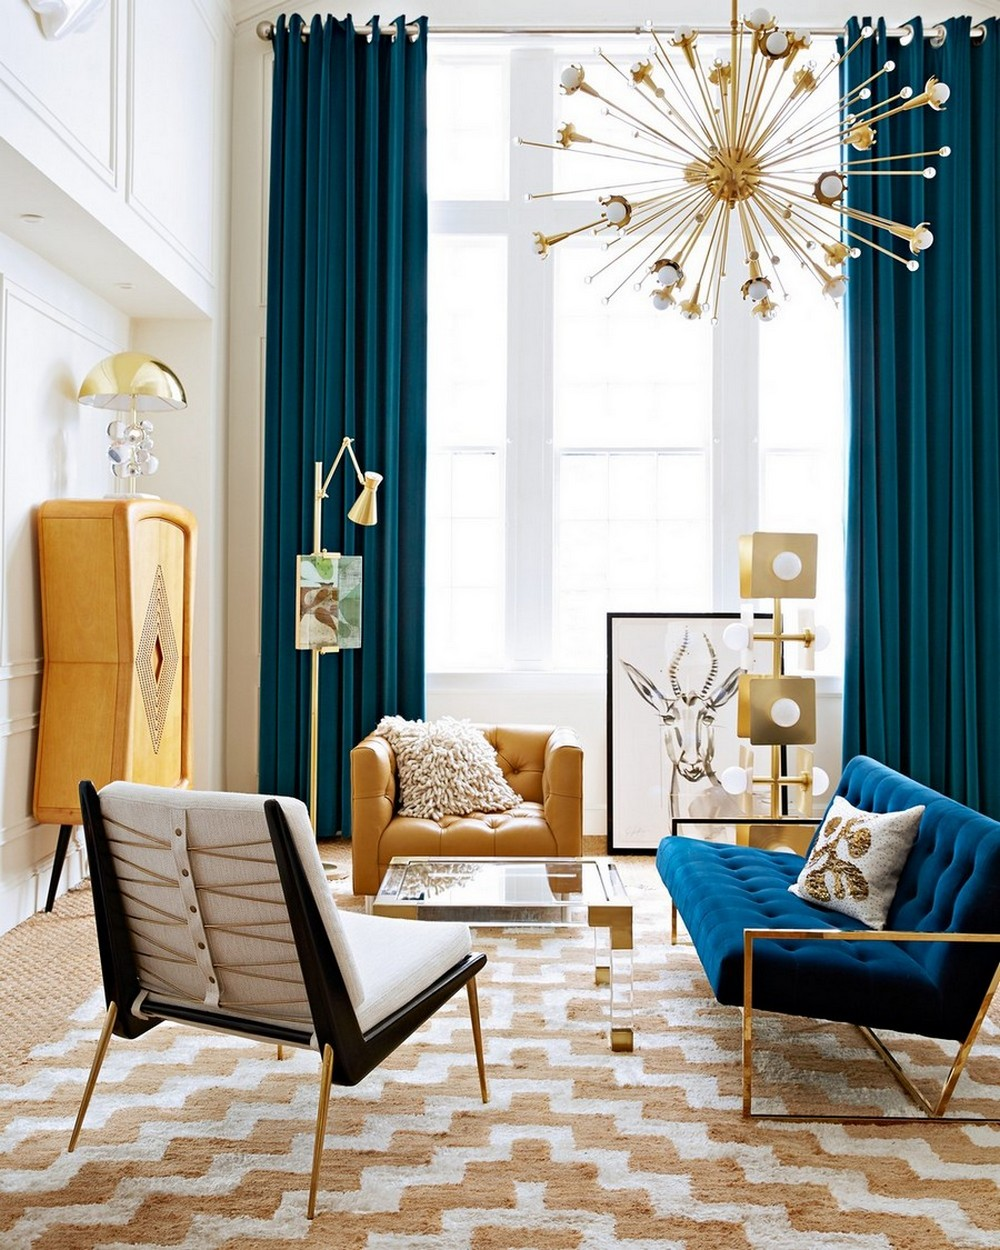 Improve Your Living Room Decor With These Mid-Century Chandeliers Mid-Century Chandelier Improve Your Living Room Decor With These Mid-Century Chandeliers Improve Your Living Room Decor With These Mid Century Chandeliers 4